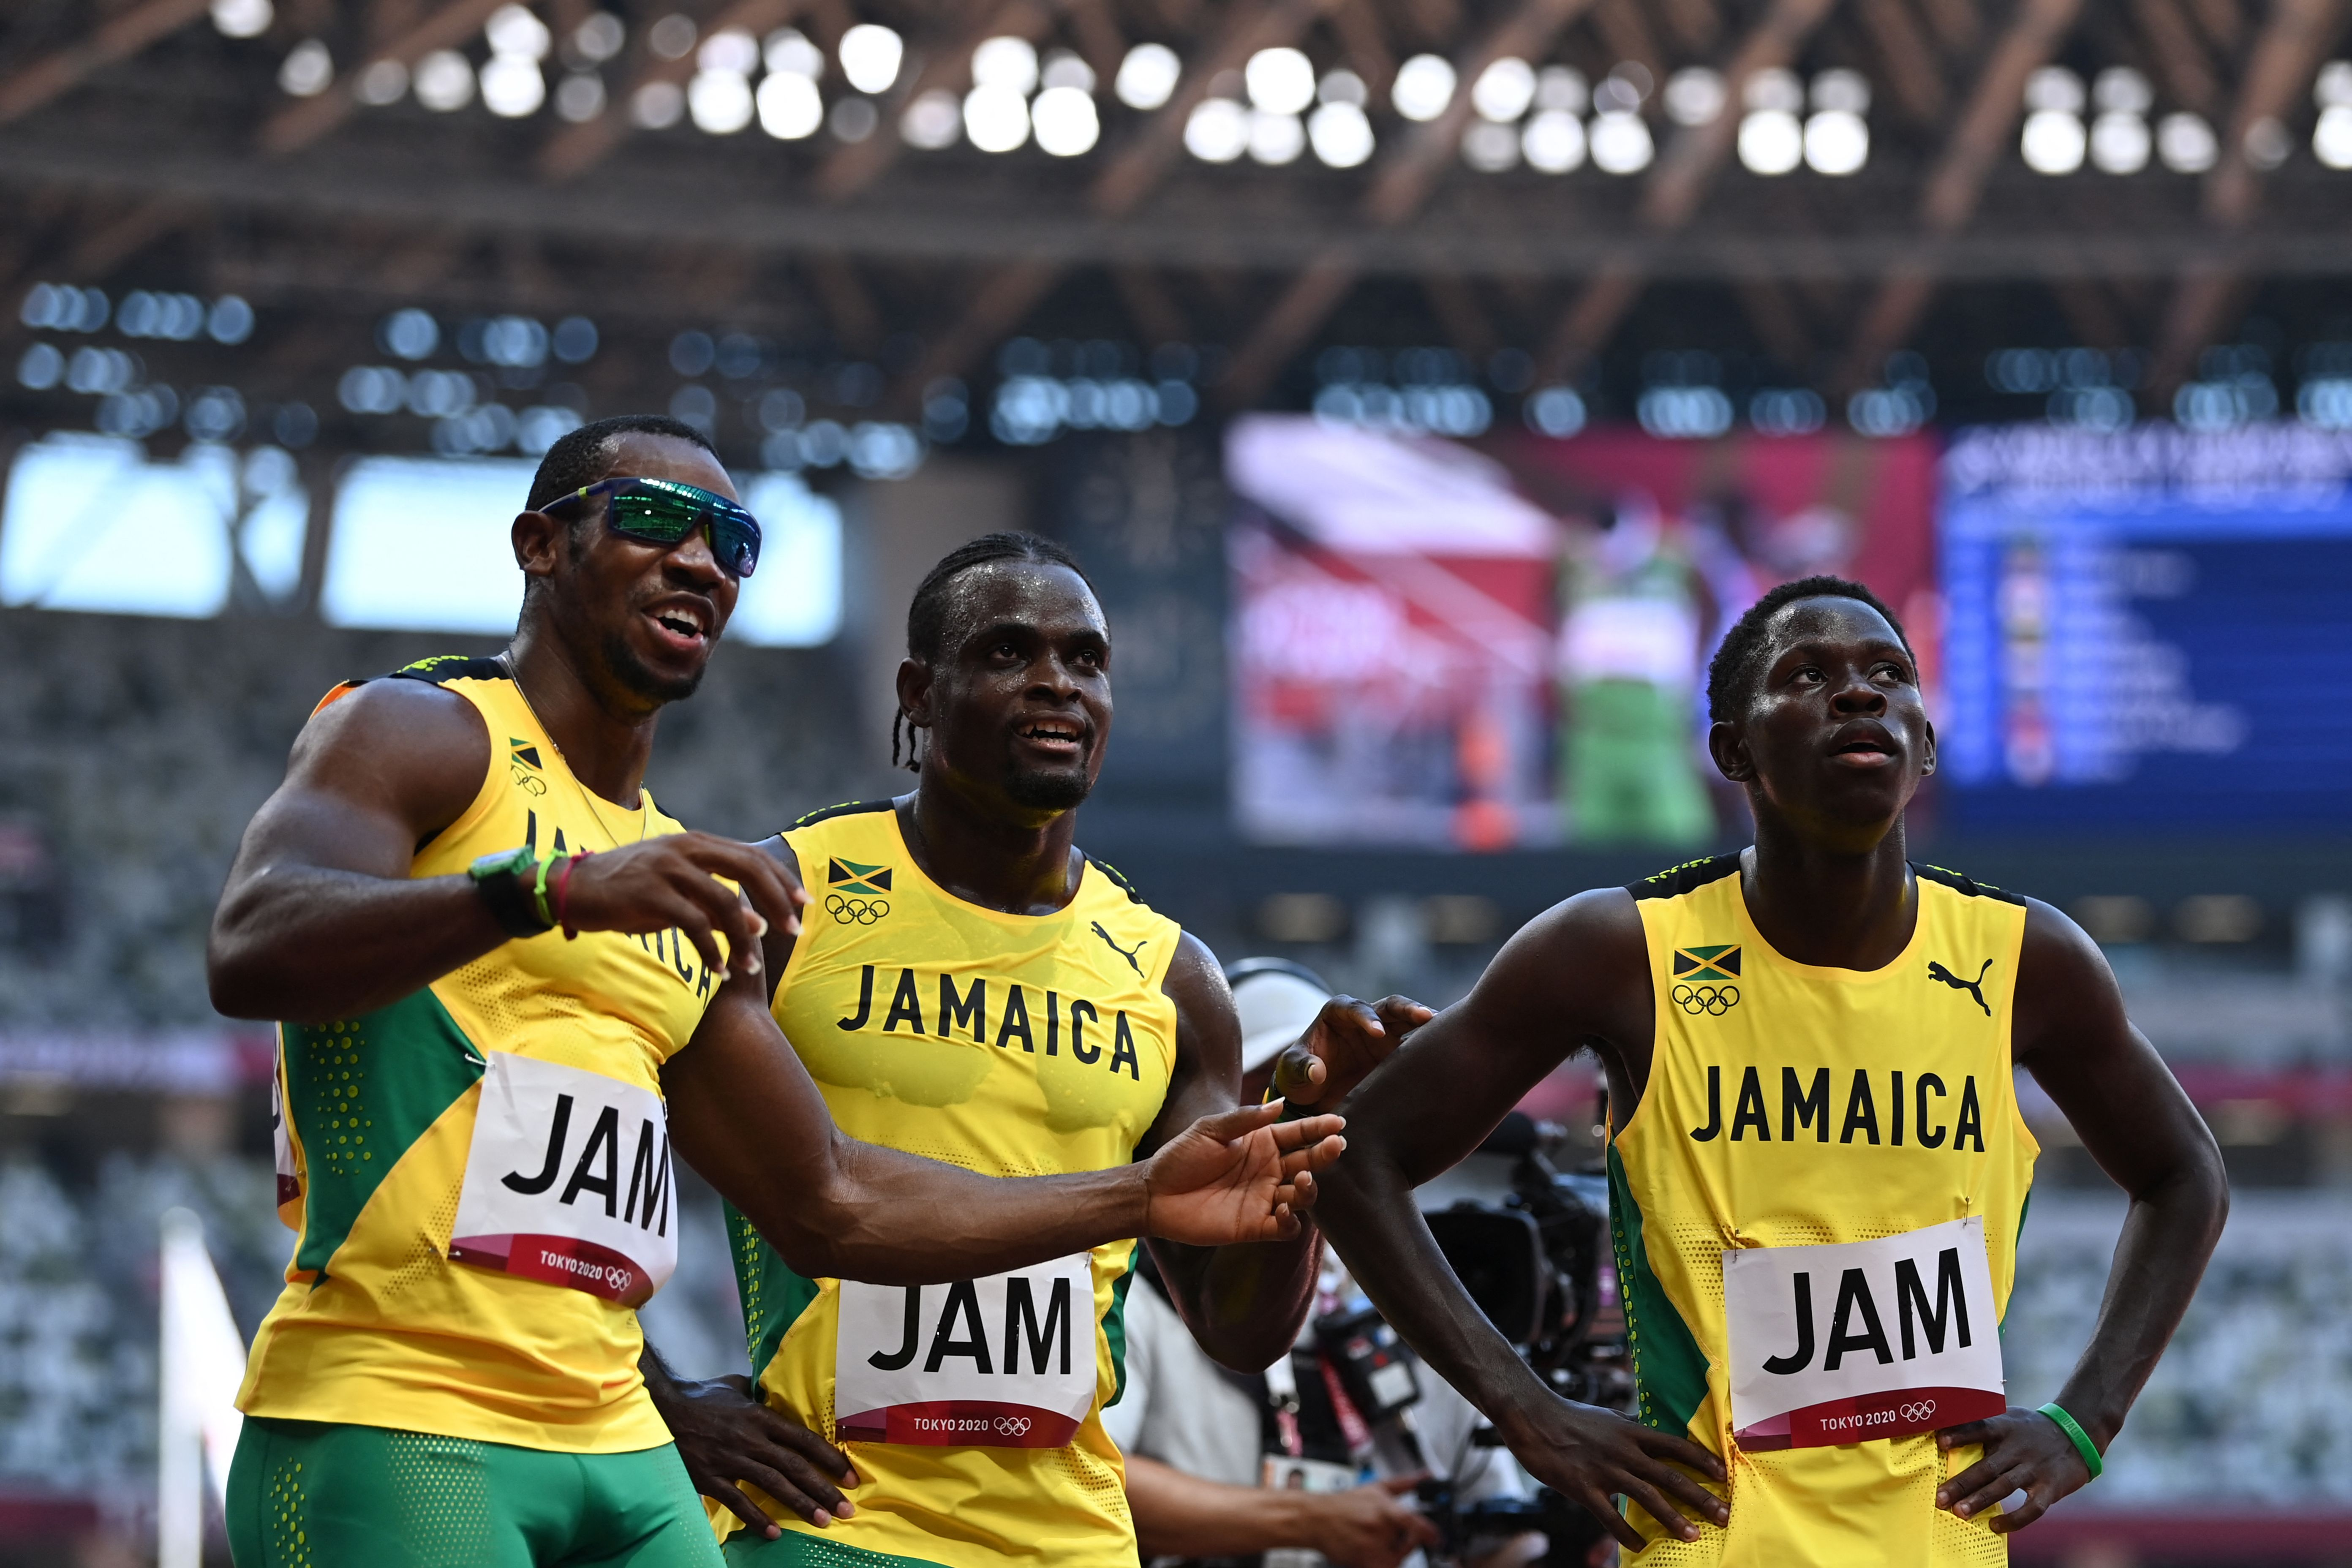 (From L) Jamaica's Yohan Blake, Jamaica's Jevaughn Minzie and Jamaica's Oblique Seville celebrate after winning in the men's 4x100m relay heats during the Tokyo 2020 Olympic Games at the Olympic Stadium in Tokyo on August 5, 2021.